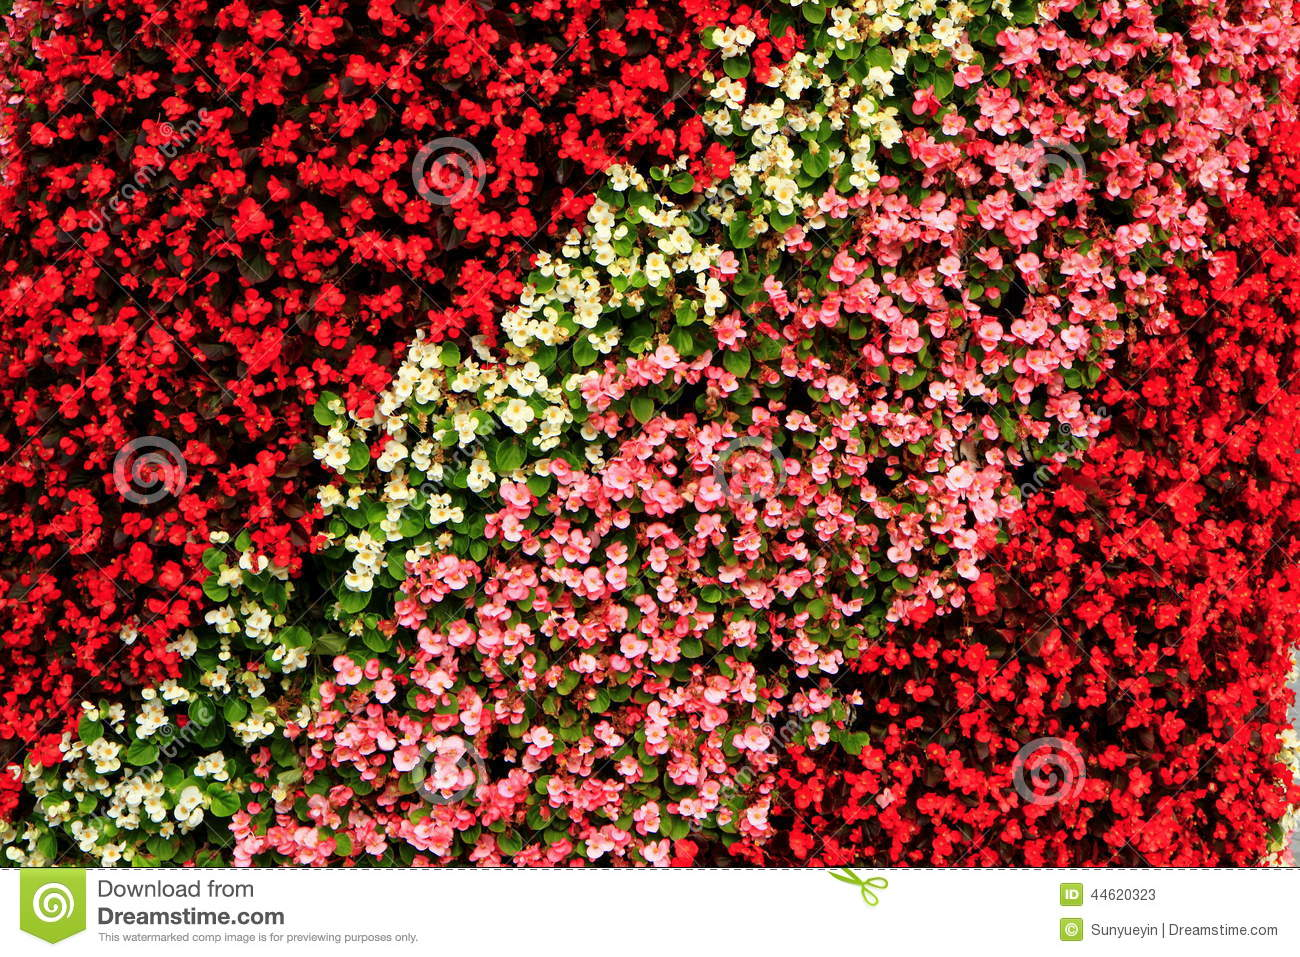 Bright-coloured Flower Bed(2)